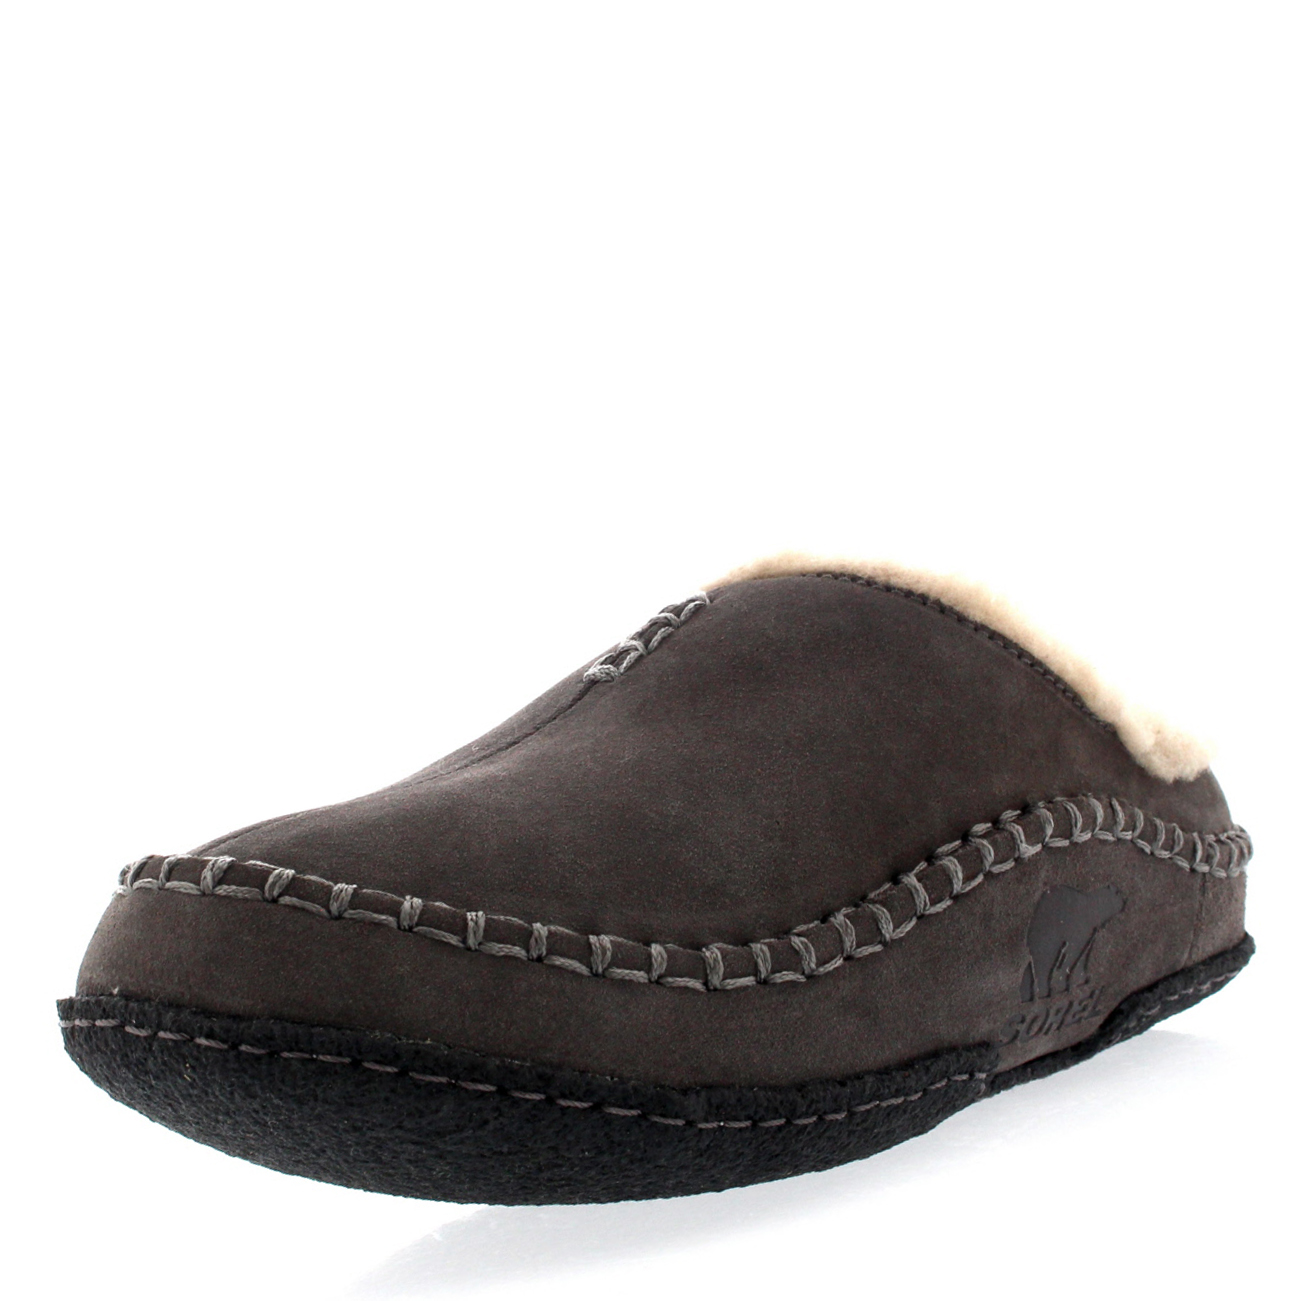 Mens Warm House Shoes Slippers